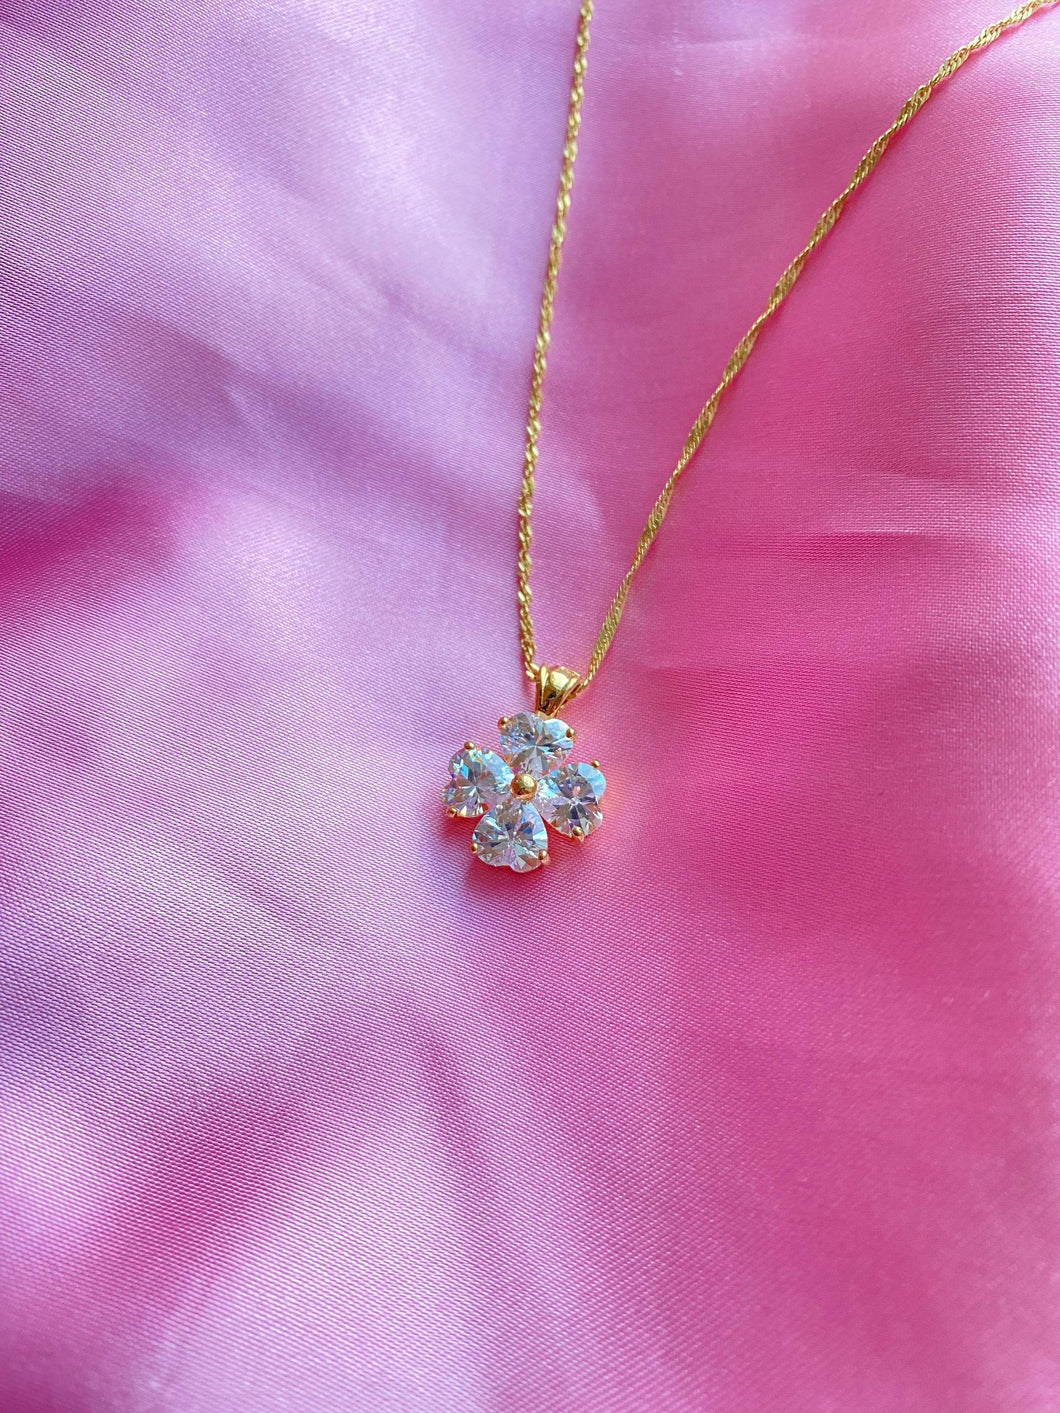 Lucky Crystal Clover Necklace, Four Leaf Clover Pendant, Good Luck Jewellery, 18k Gold Plated Crystal Jewelry, Gift for Her, ,  - positive metal attitude ltd